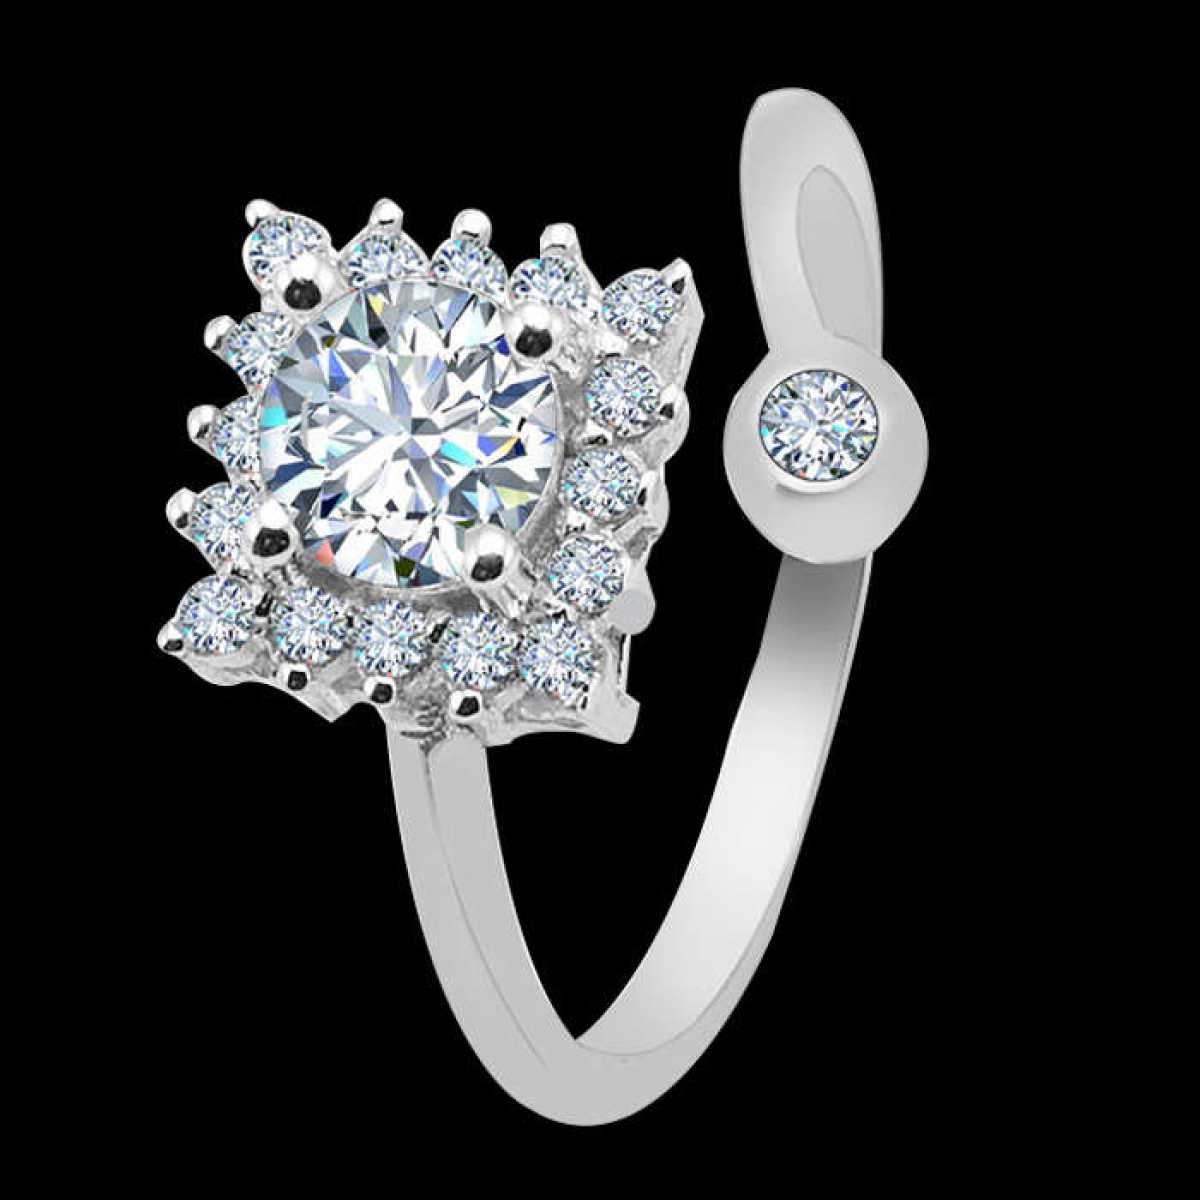 Bulk Solitaire Silver Ring